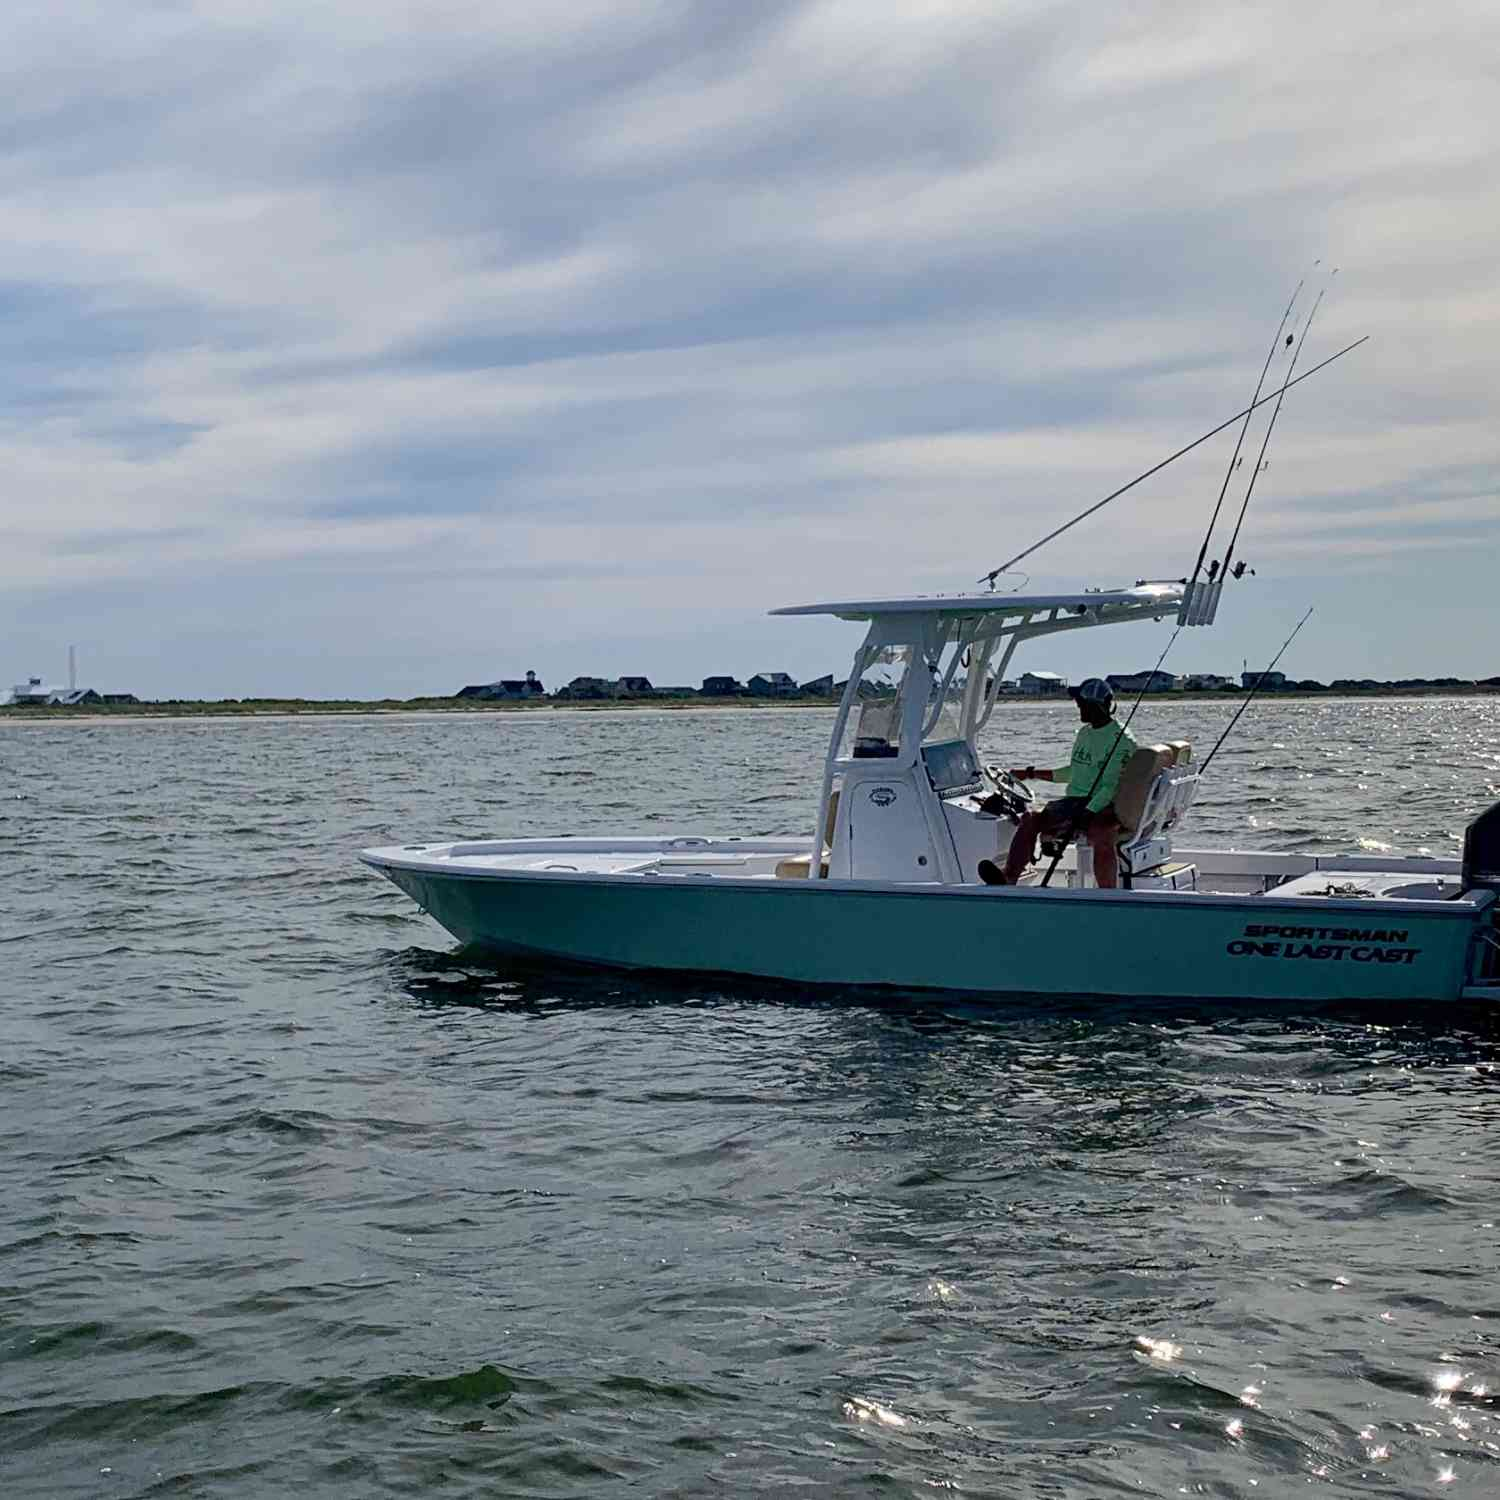 Title: ONE LAST CAST - On board their Sportsman Masters 247 Bay Boat - Location: Southport NC. Participating in the Photo Contest #SportsmanJuly2019